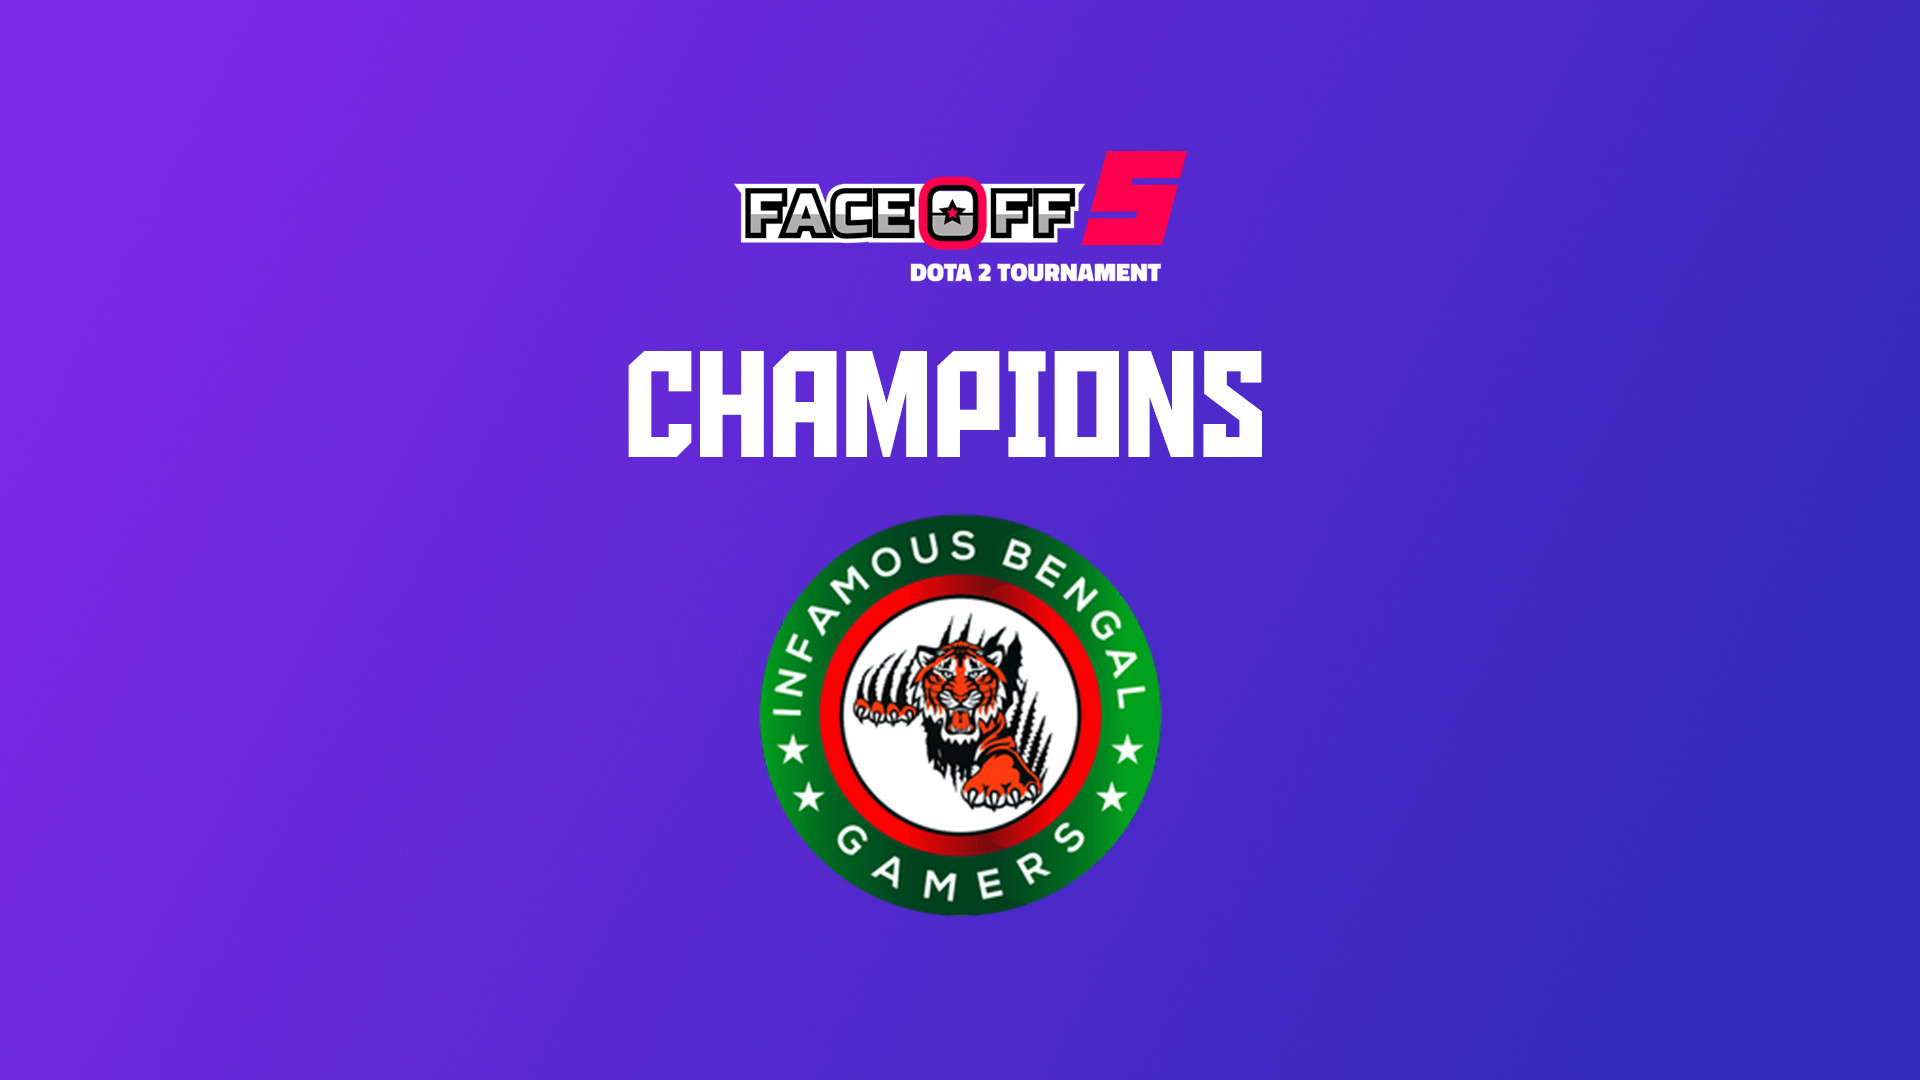 DaGameLeague esports news Faceoff 5 comes to an end. banner